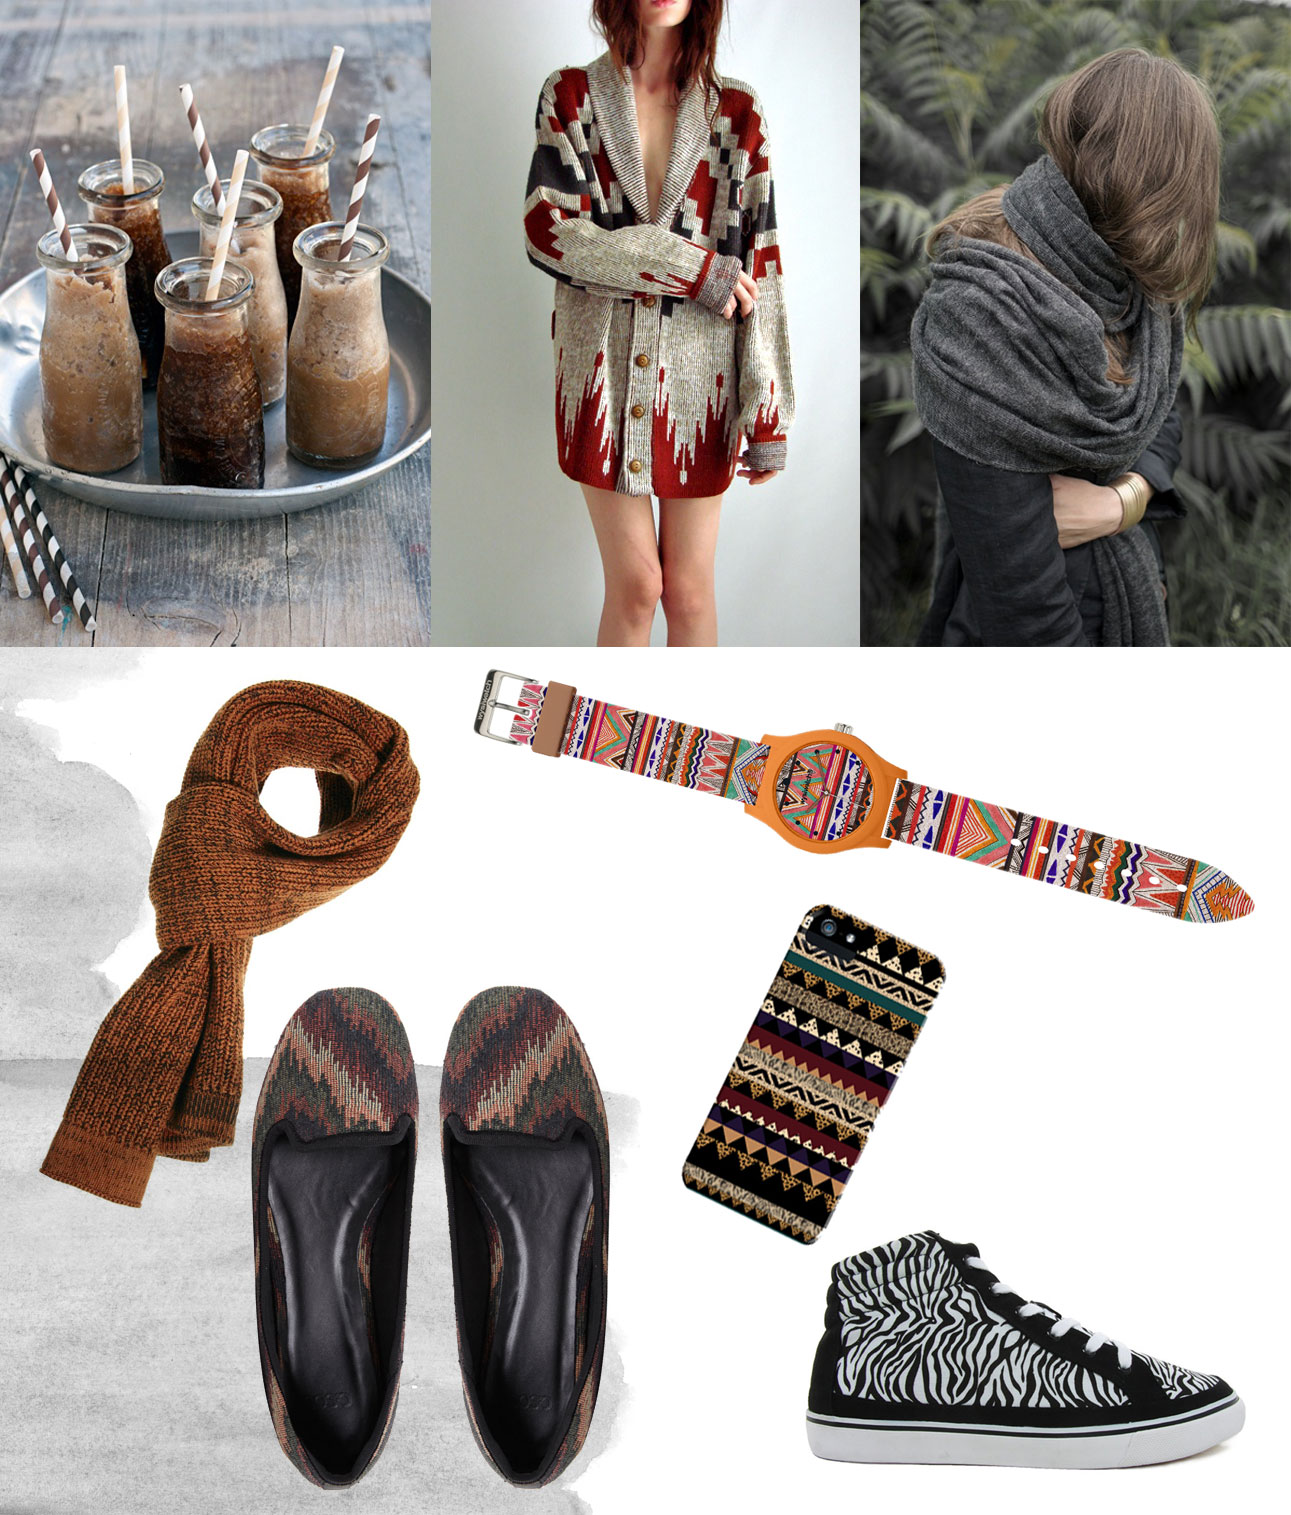 Fashion Inspiration Moodboard Fall Autumn Style Aztec Tribal Navajo Iphone Case Watch Motif